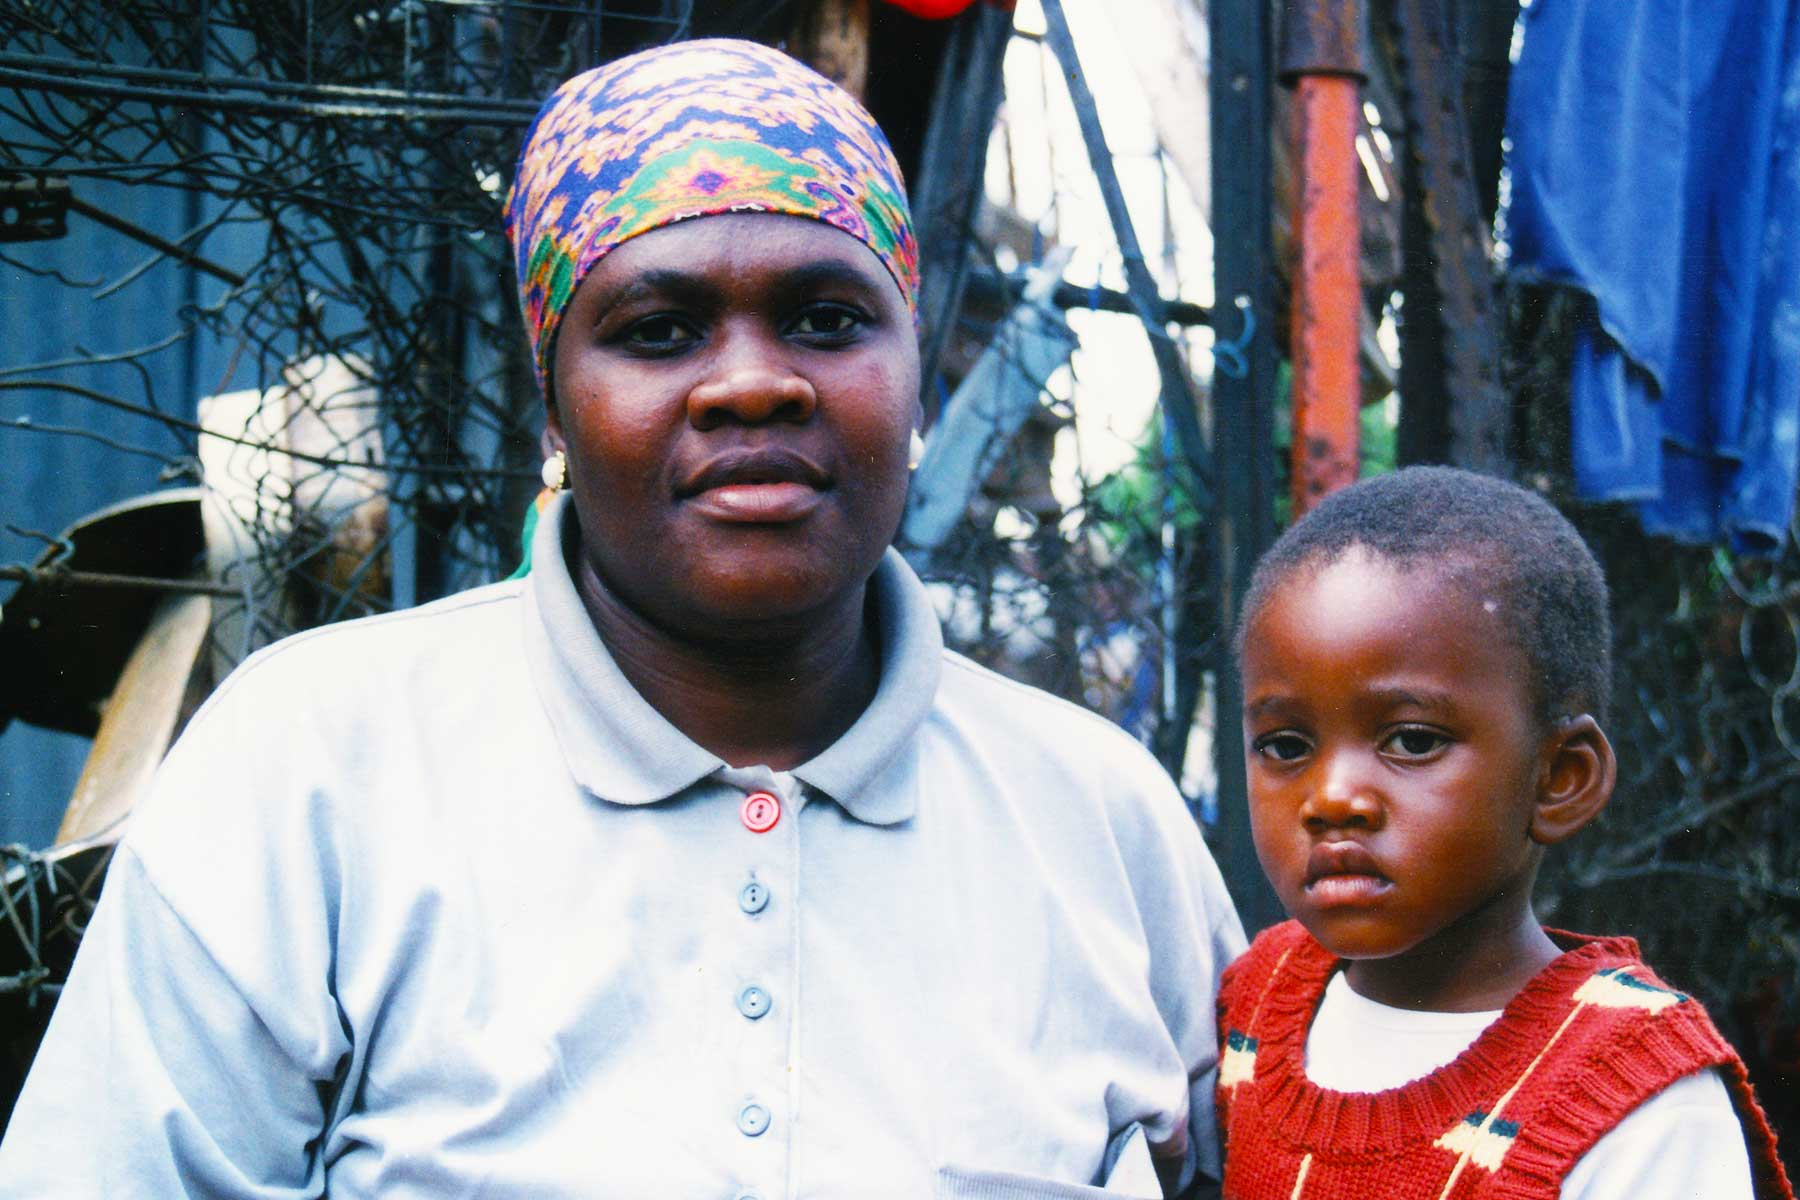 Xhosa mother and child at Soweto, South Africa | Steven Andrew Martin | School for International Training | SIT Study Abroad | Photo Journal